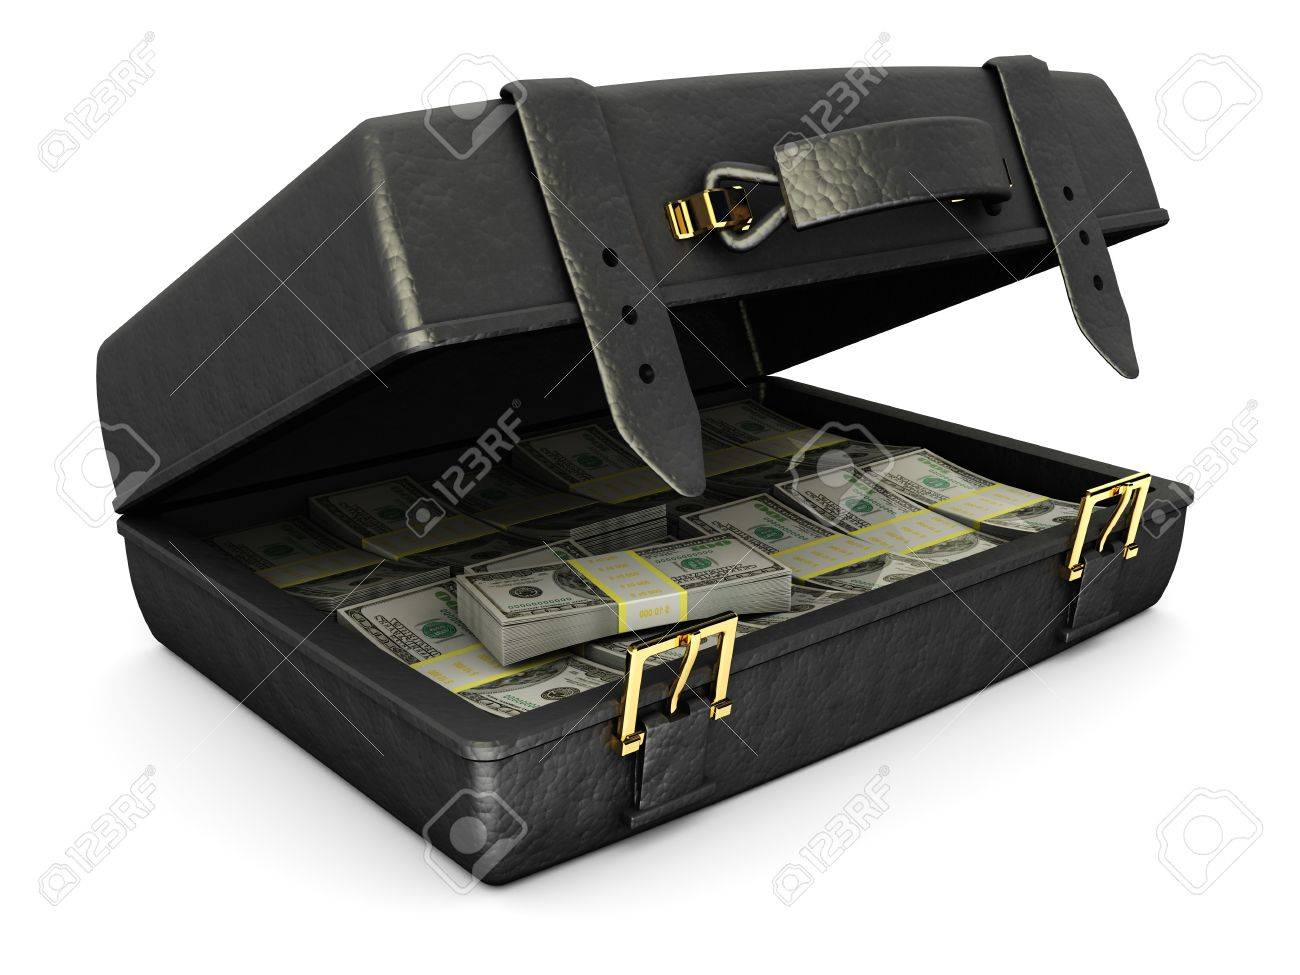 3d illustration of leather suitcase with money, over white background Stock Photo - 8534715